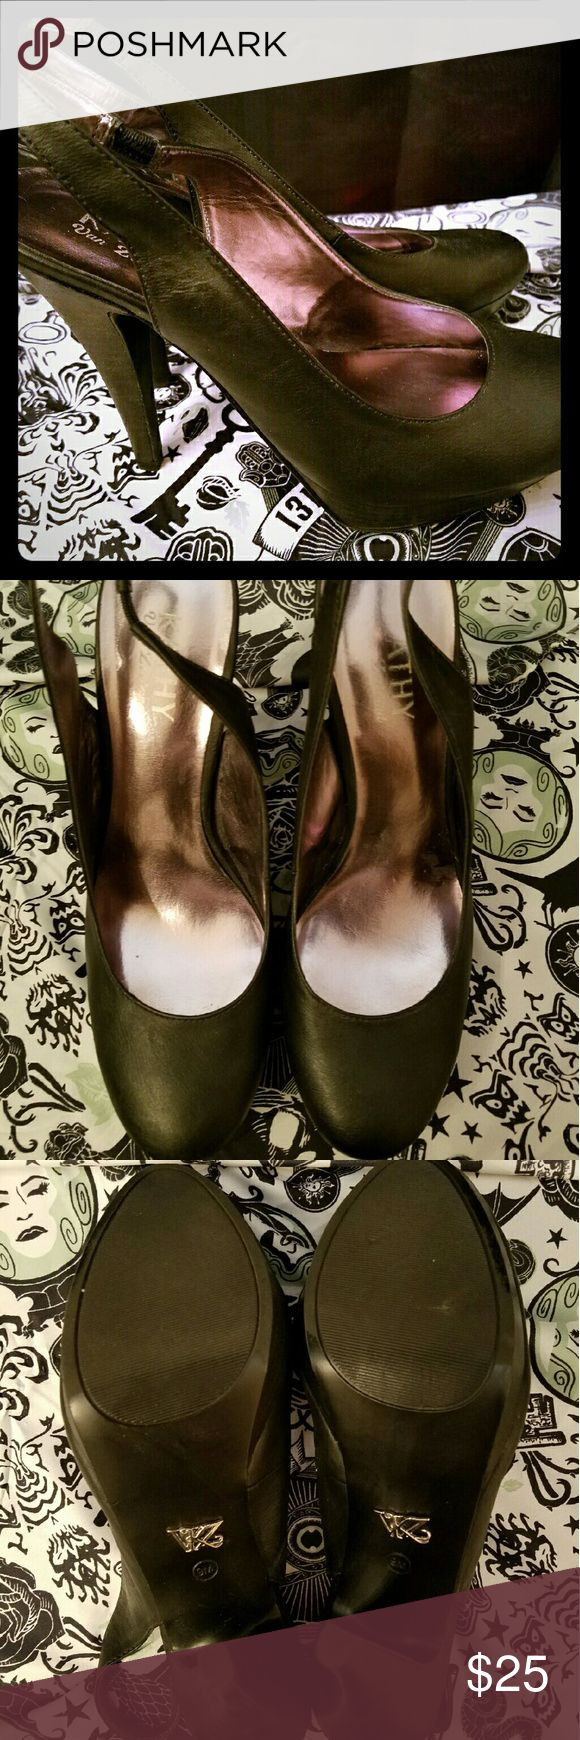 """Kathy Van Zeeland Black Slingback Shoes Kathy Van Zeeland Black Slingback Shoes with Round Toe. 1"""" Platform with 5"""" Heel. Worn once but look brand new. Comfortable for height. Silver KVZ detail on bottom & pink shimmer insole. Kathy Van Zeeland Shoes Heels"""